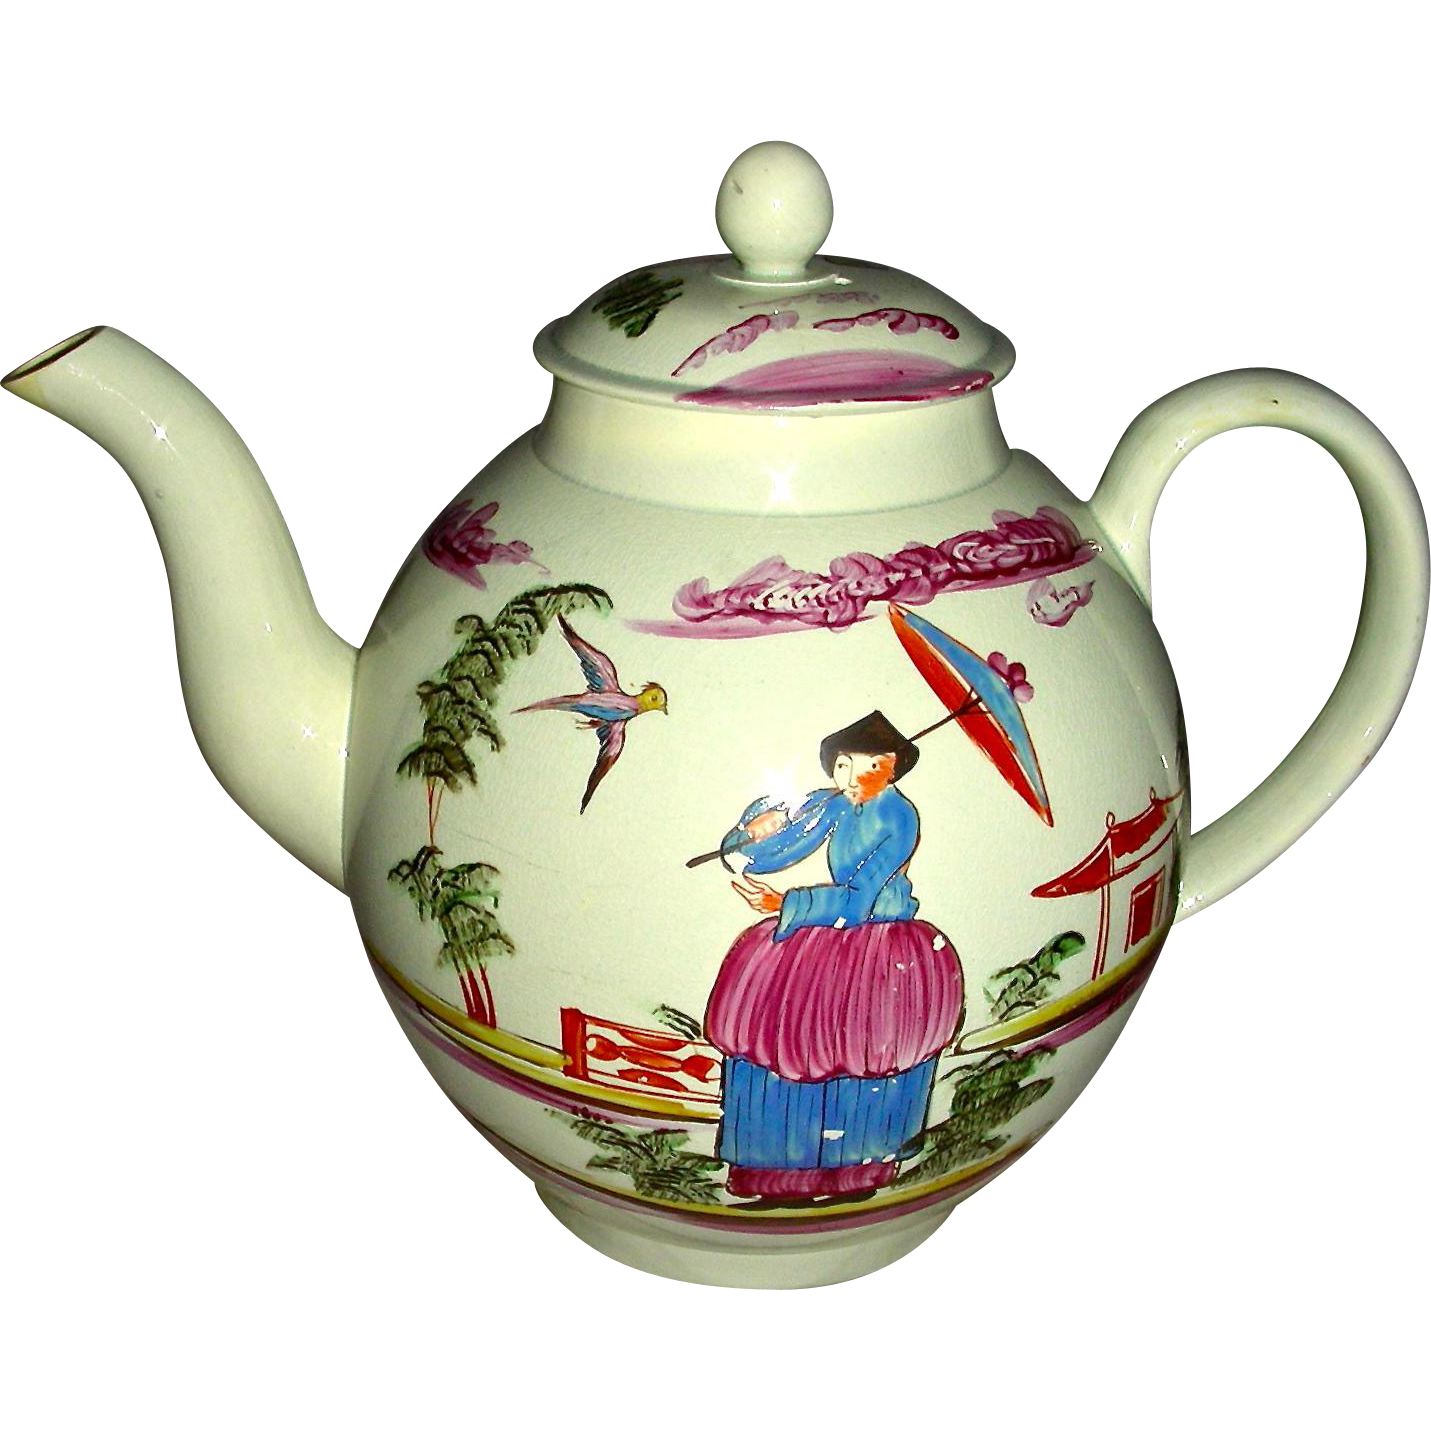 Lead Glaze Pearlware Staffordshire Teapot w/ Chinoiserie Decoration, c. 1795